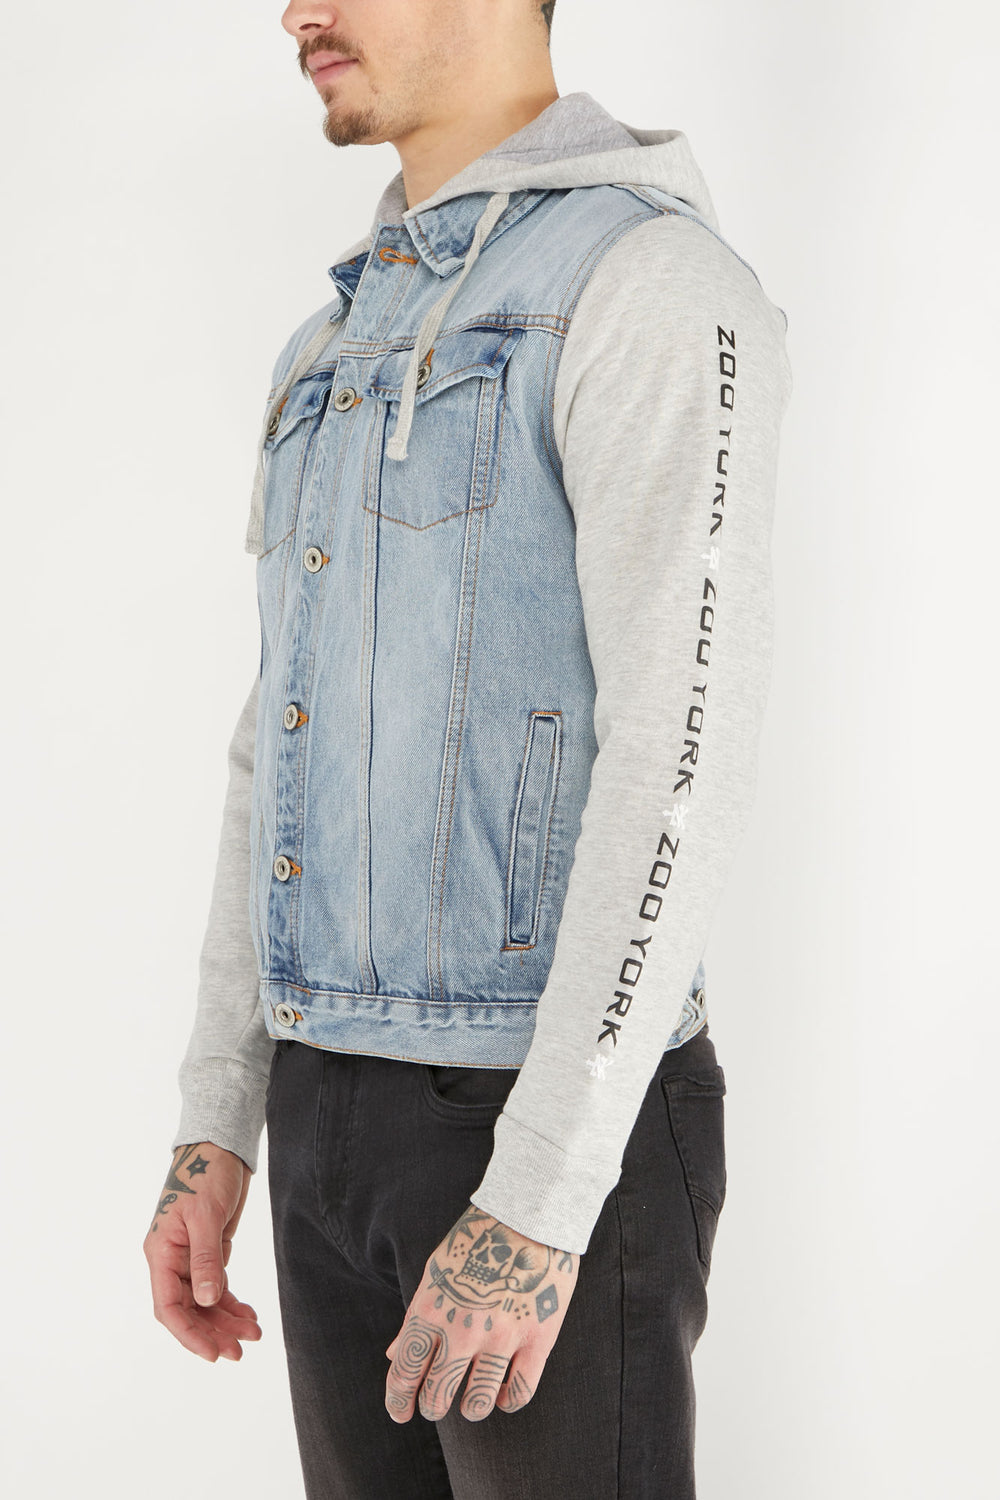 Zoo York Mens Denim and Fleece Jacket Denim Blue